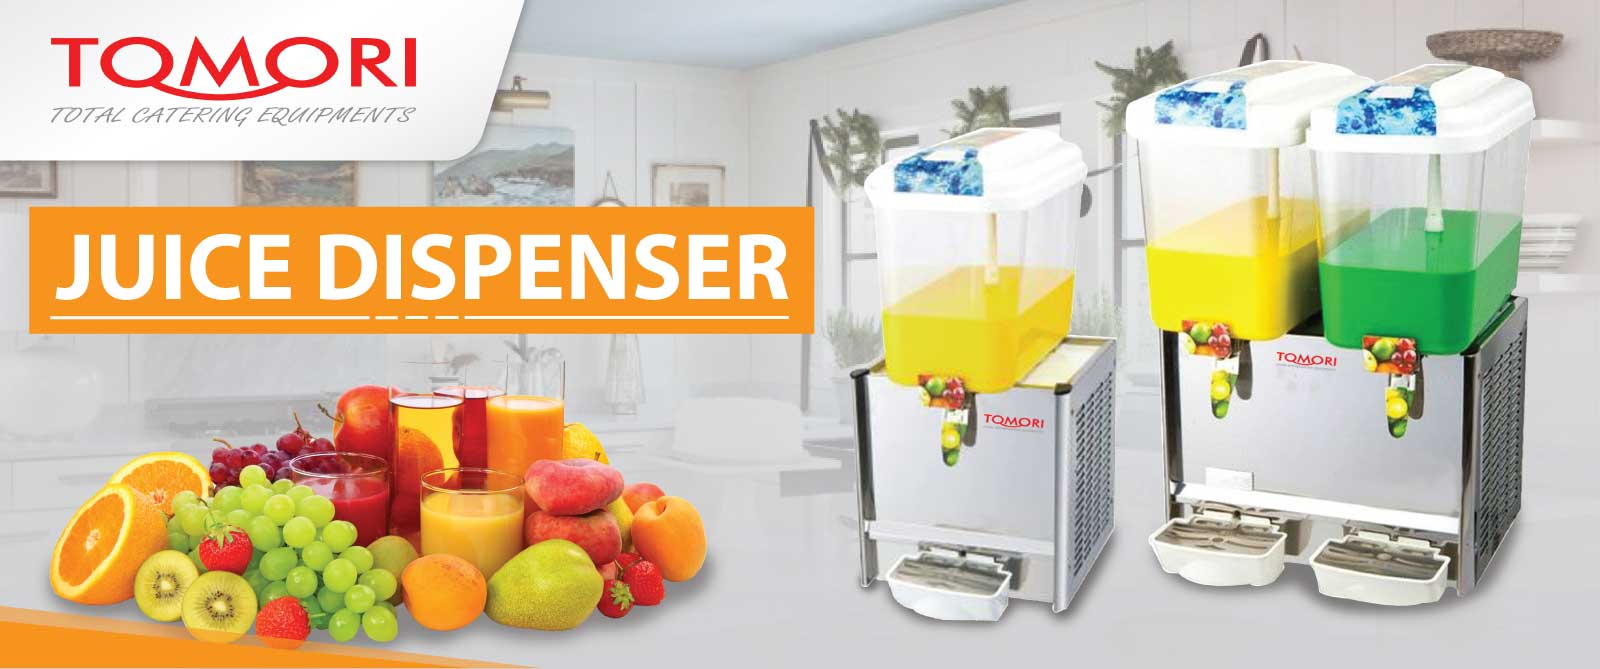 Banner Tomori Juice Dispenser Machine